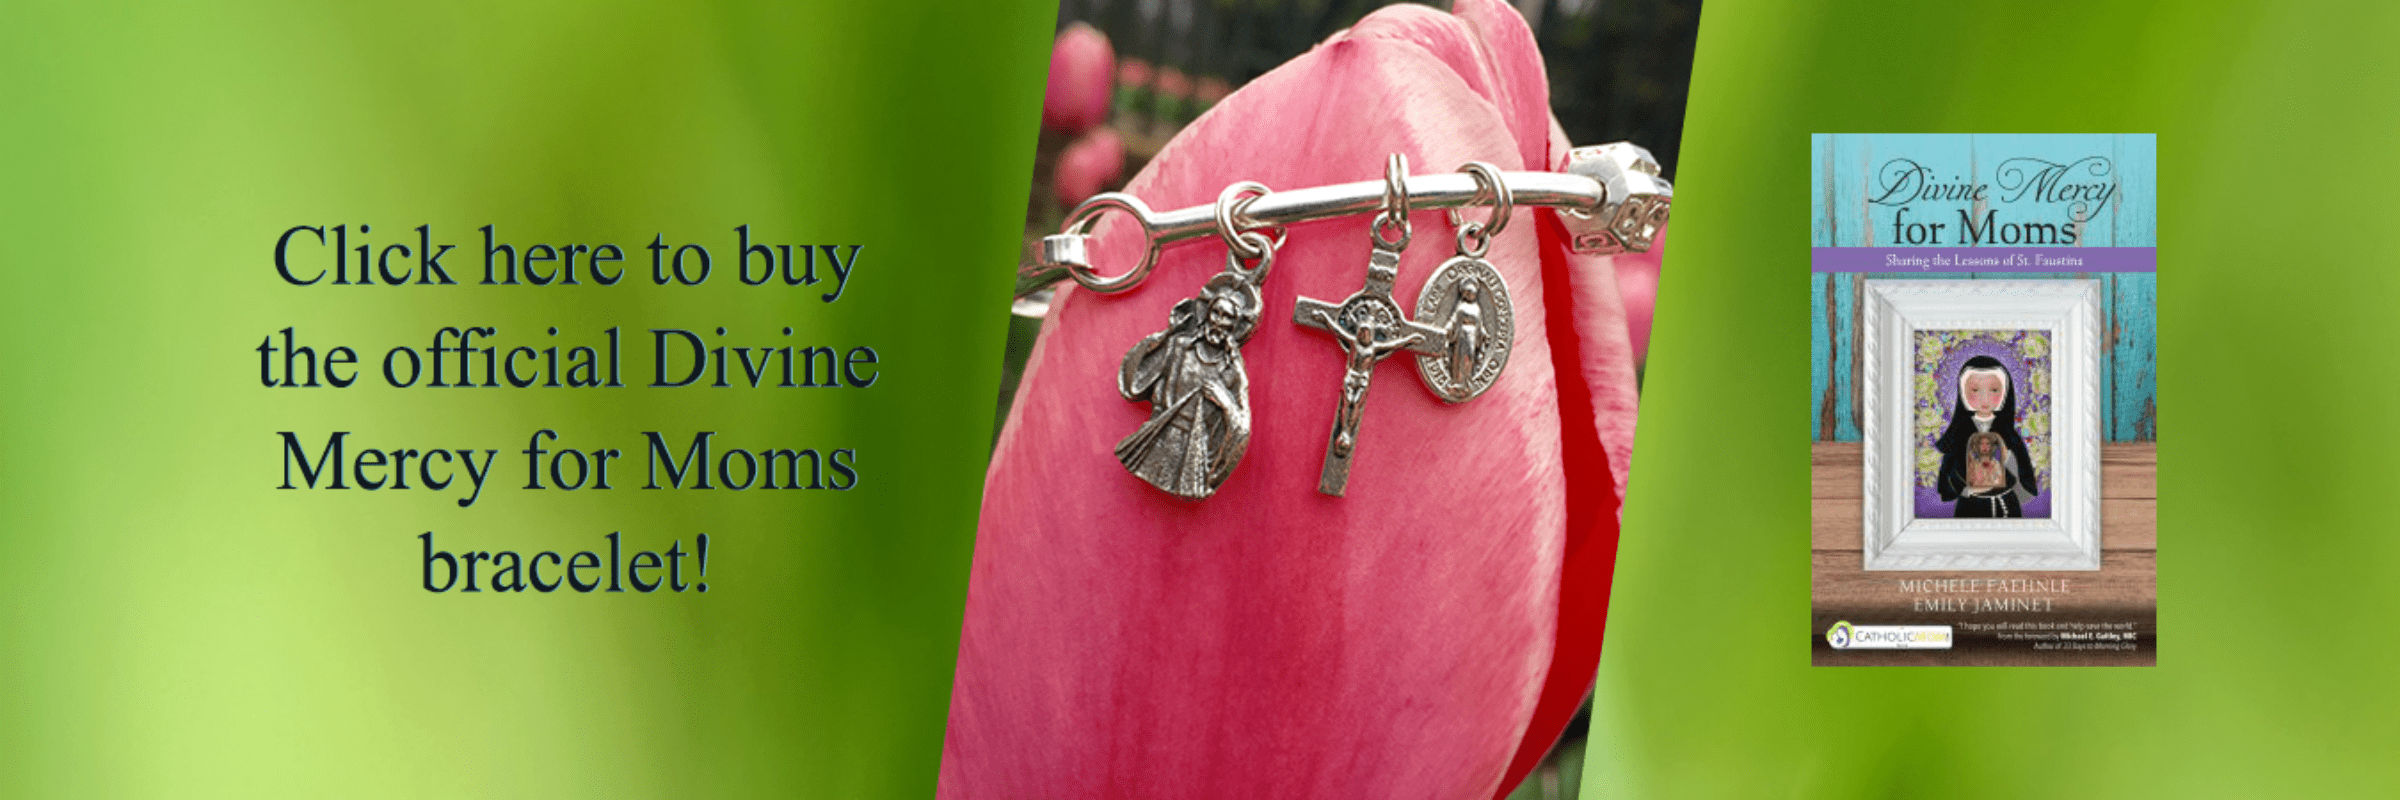 Divine Mercy for Moms Prayer Bracelet shop now